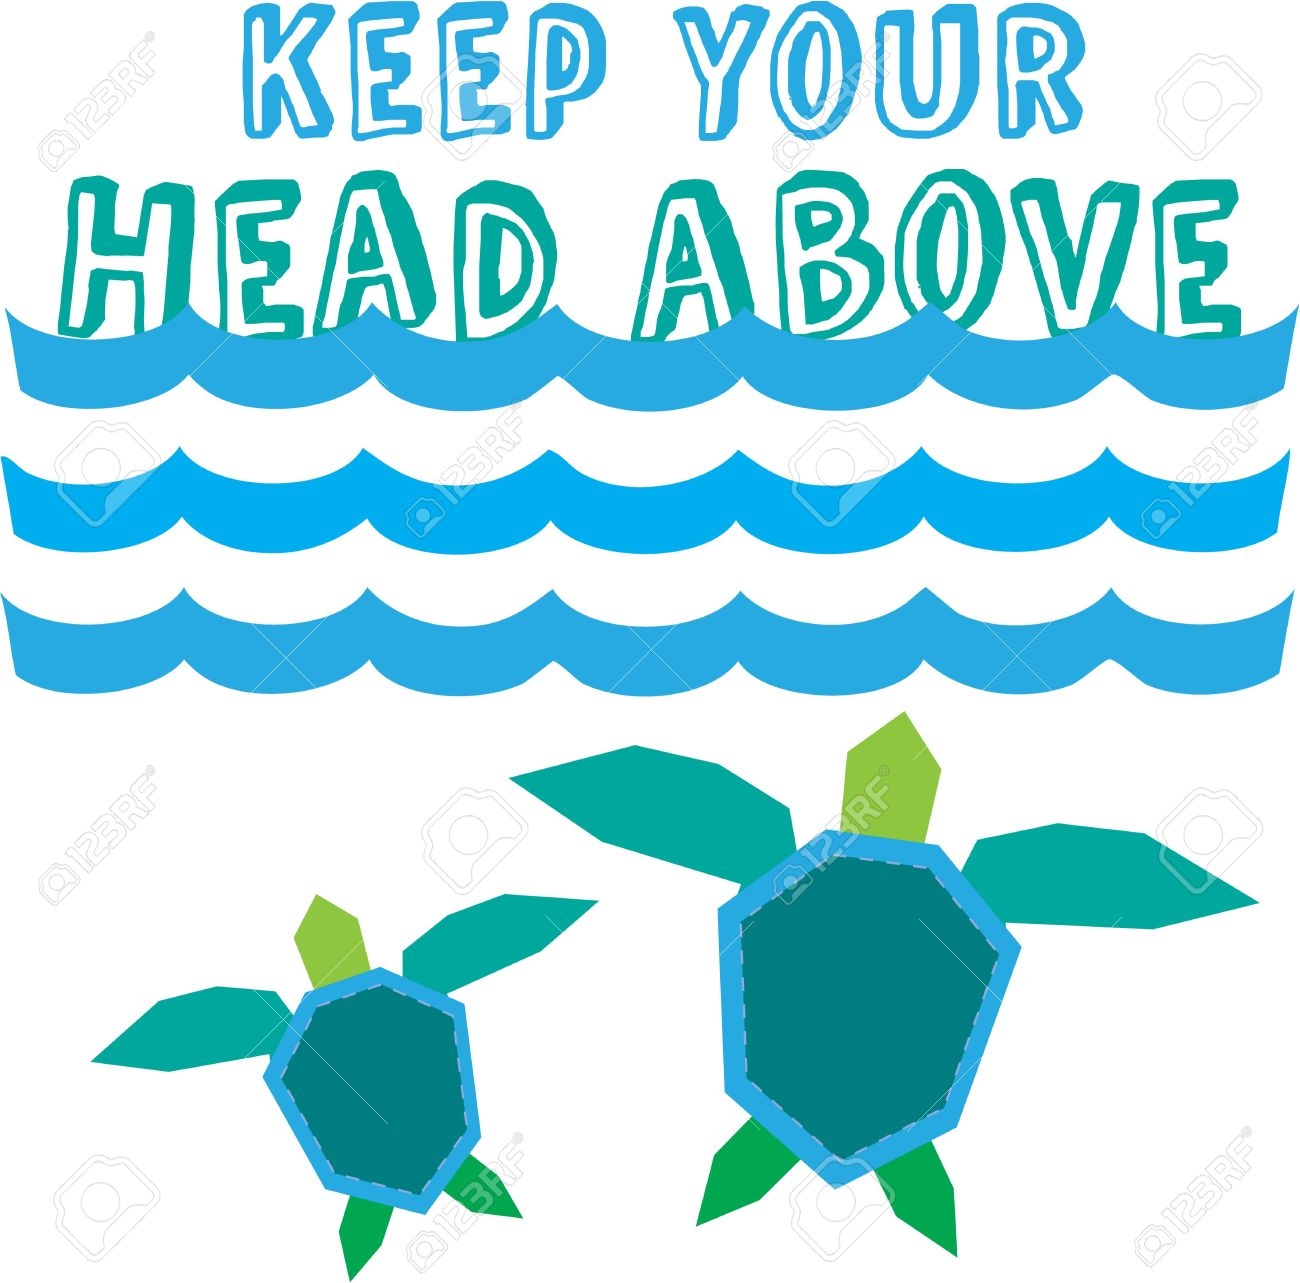 Mama and baby turtle clipart clip art transparent download Our Mommy And Baby Turtle Swim Under The Ocean's Blue Waves ... clip art transparent download